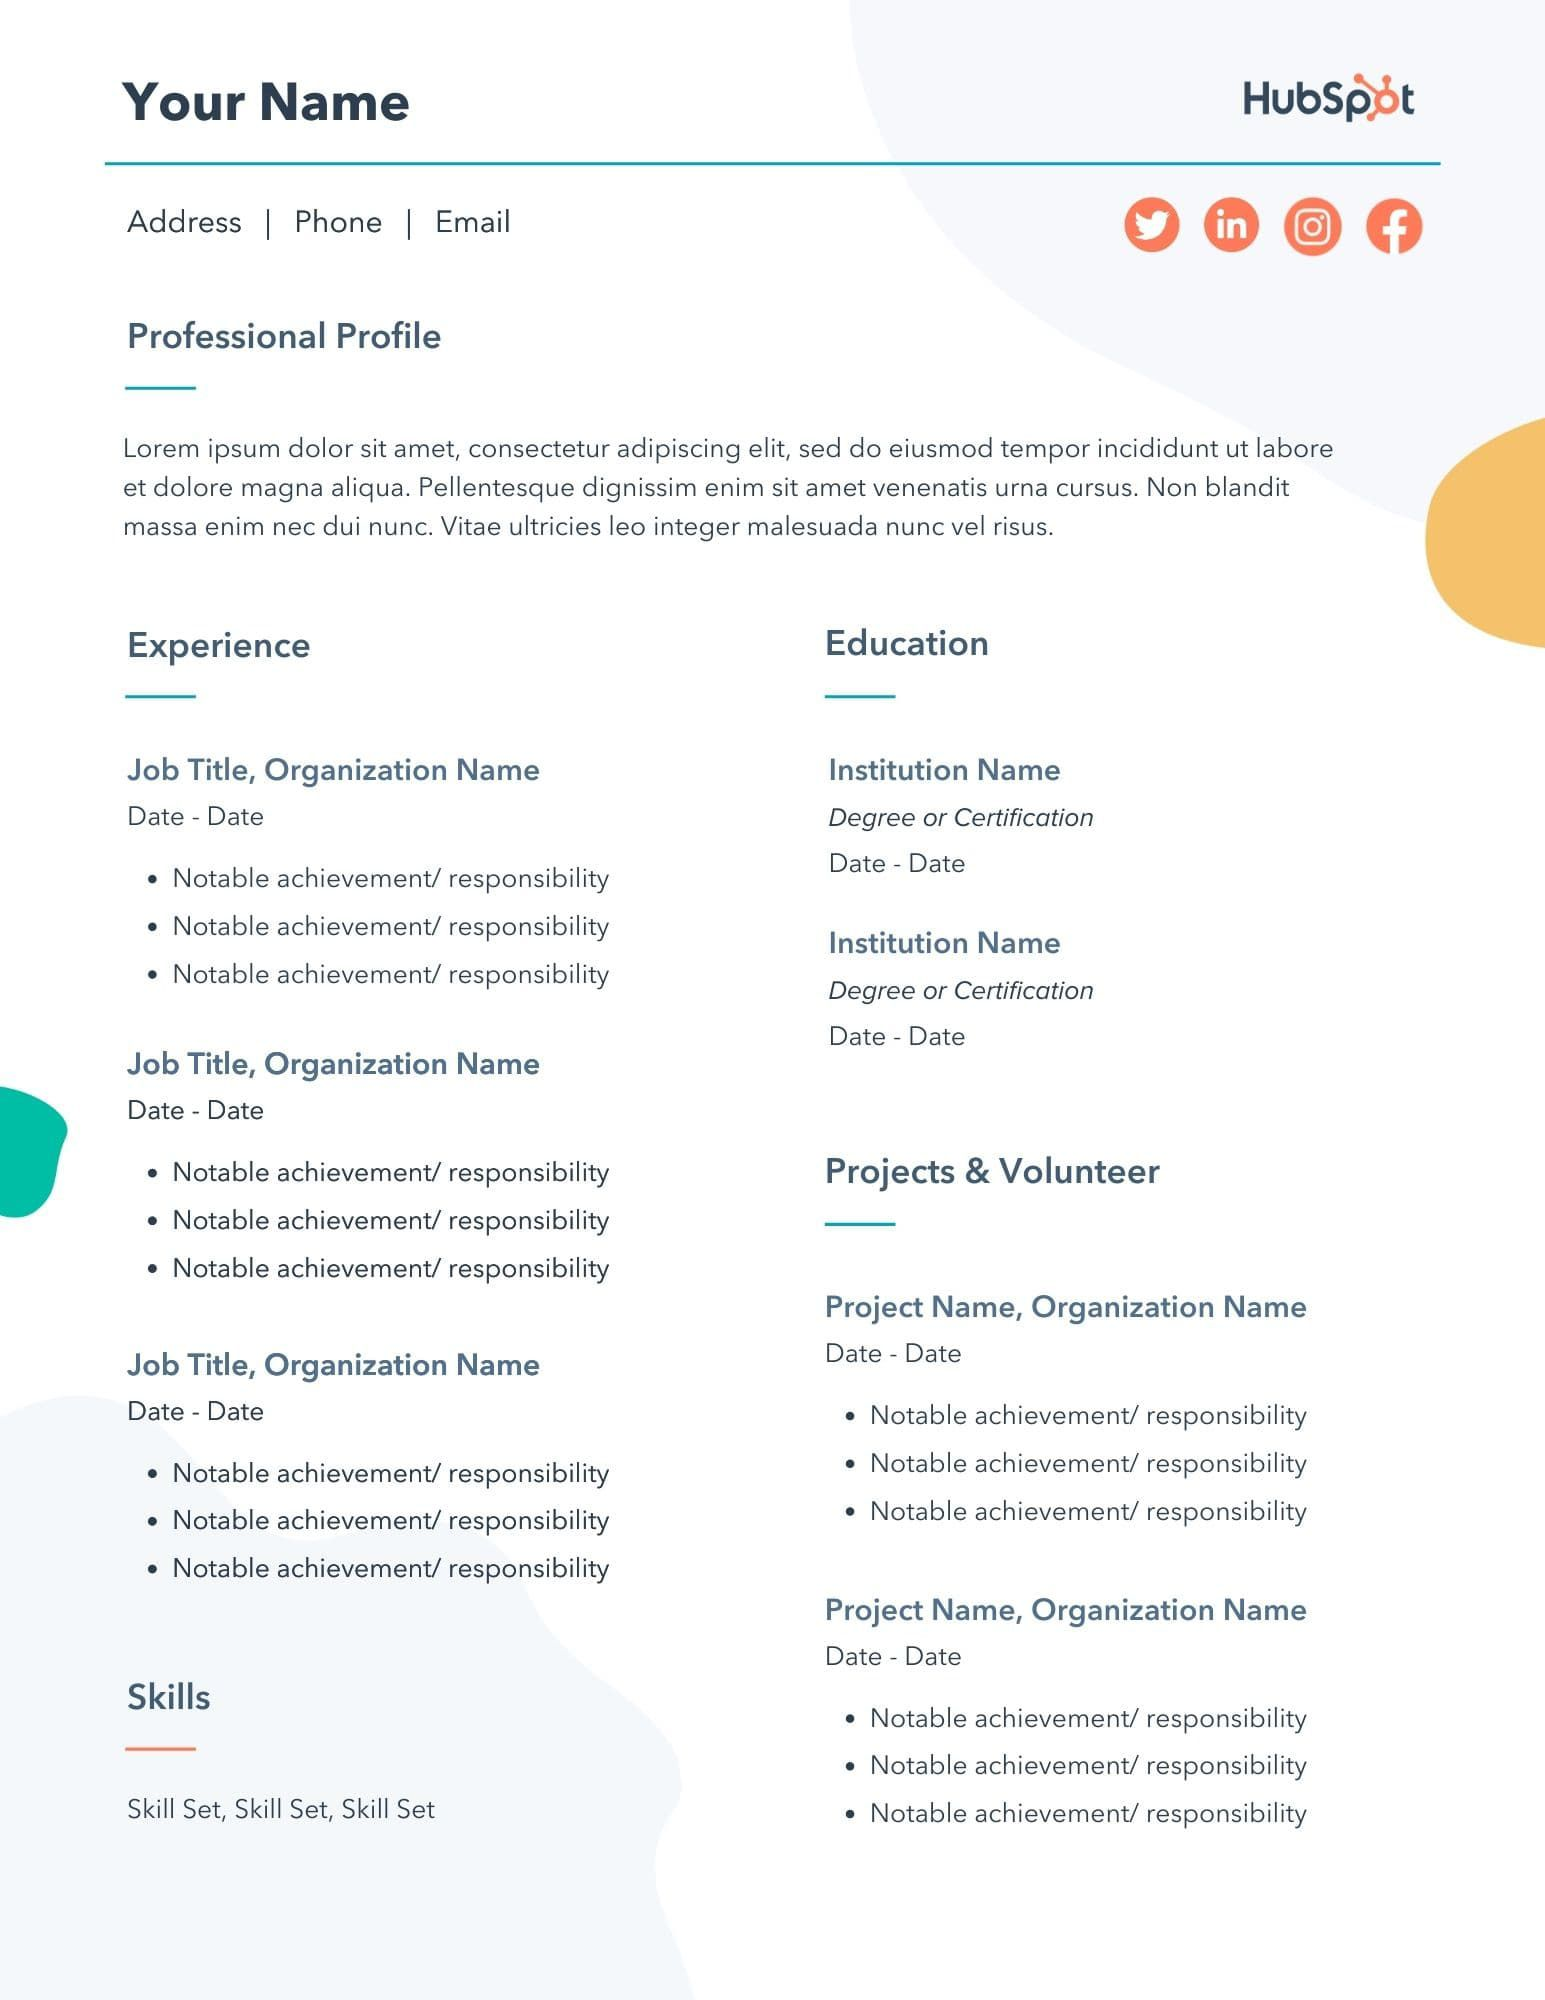 006 Archaicawful Word Template For Resume Example  Resumes M Free Best Document DownloadFull